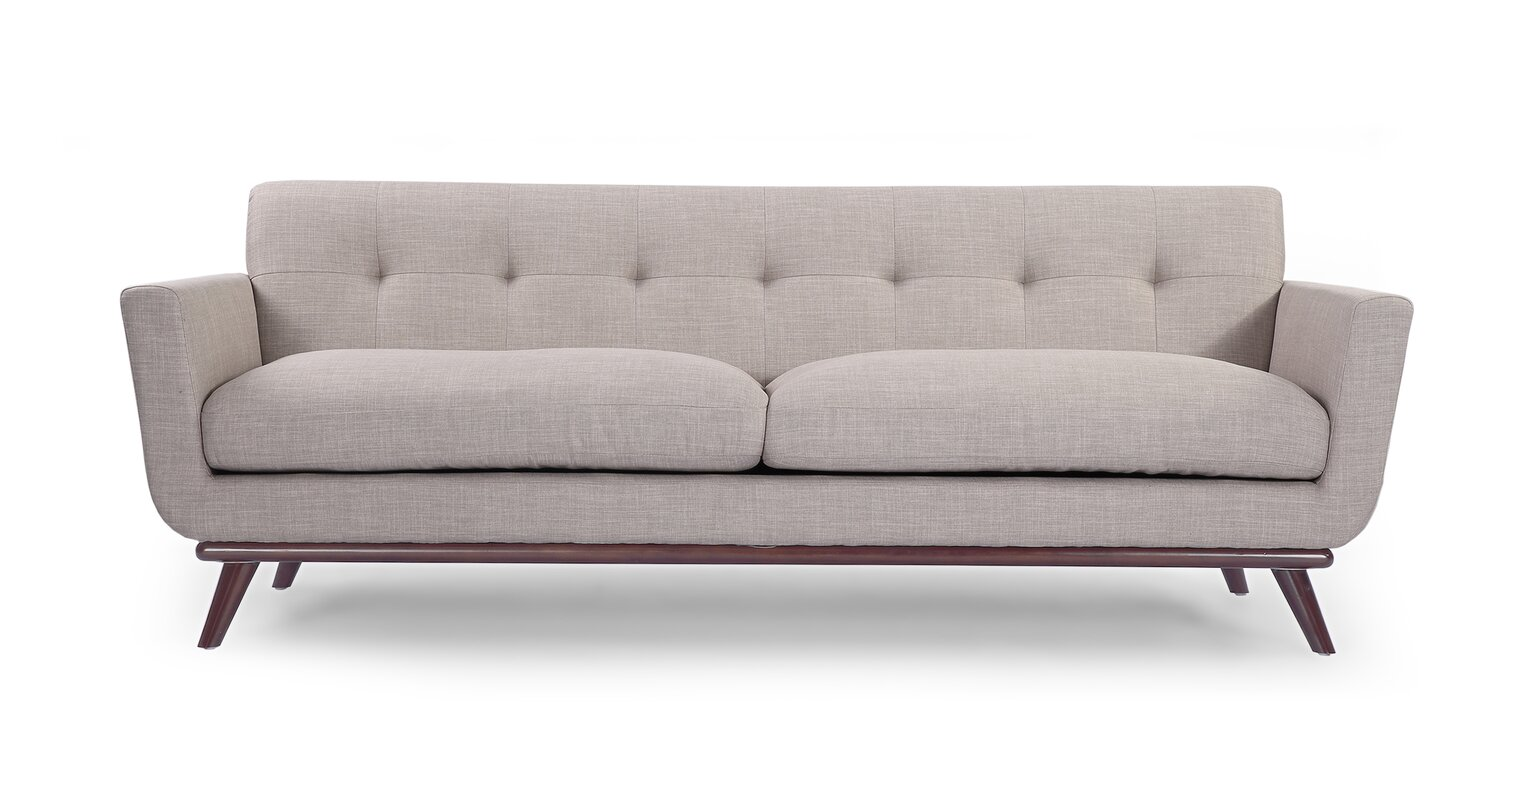 Luther Mid Century Modern Vintage Sofa With Wood Legs